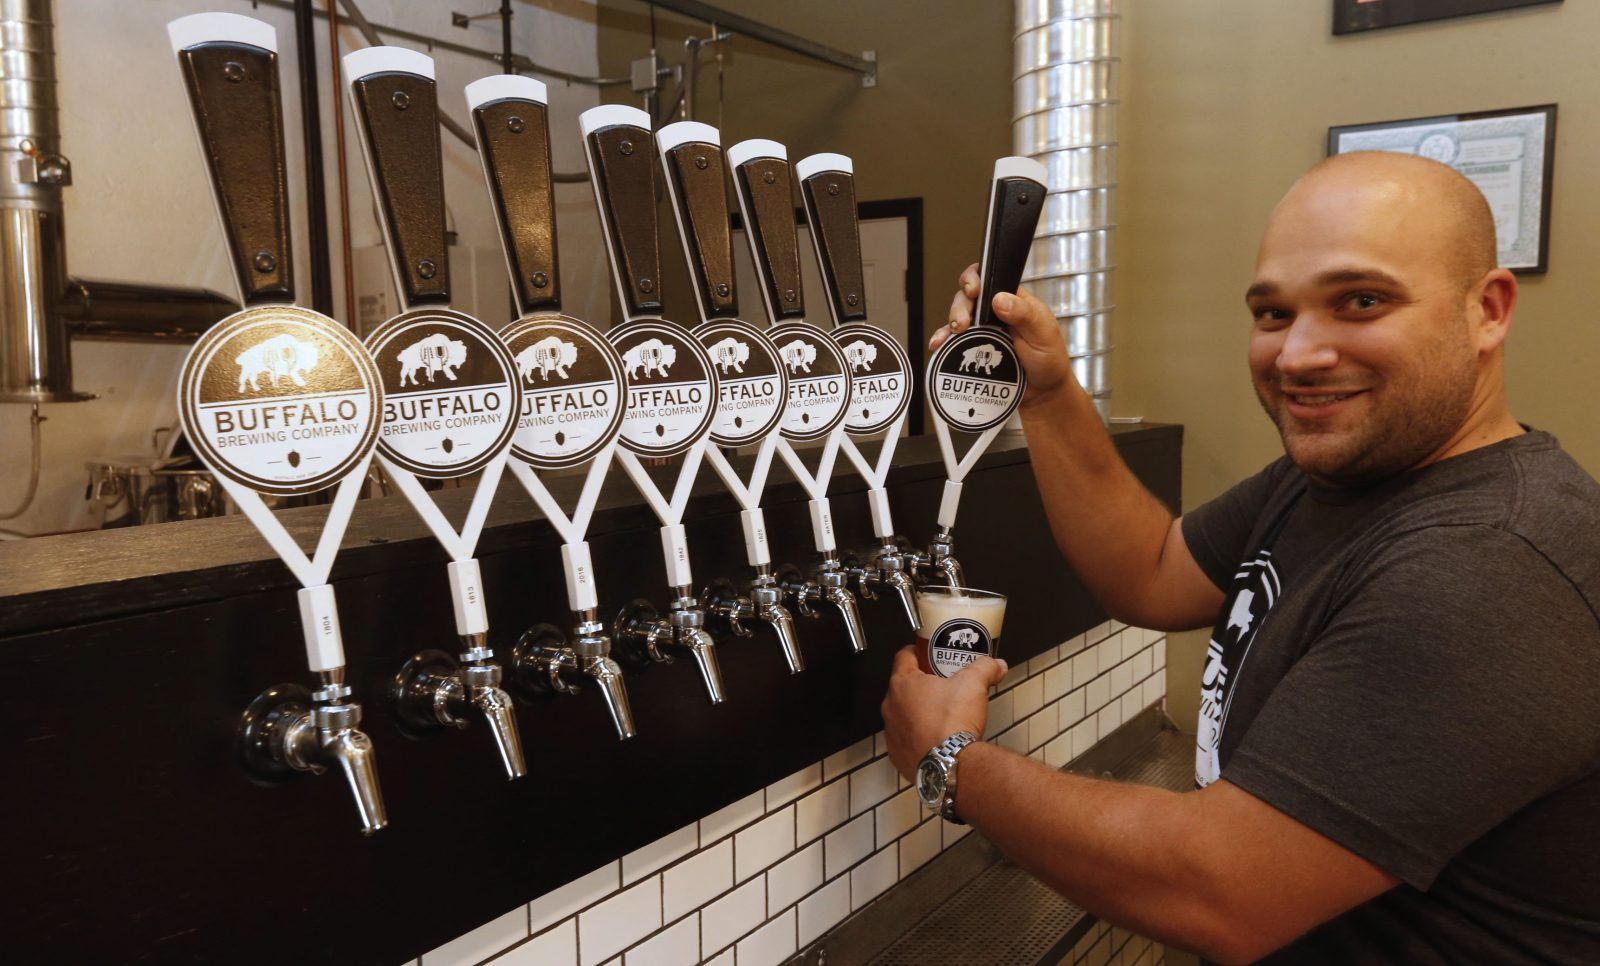 John Domres is co-owner of Buffalo Brewing Company, which has big plans for St. Patrick's Day in Buffalo. (Robert Kirkham/Buffalo News file photo)